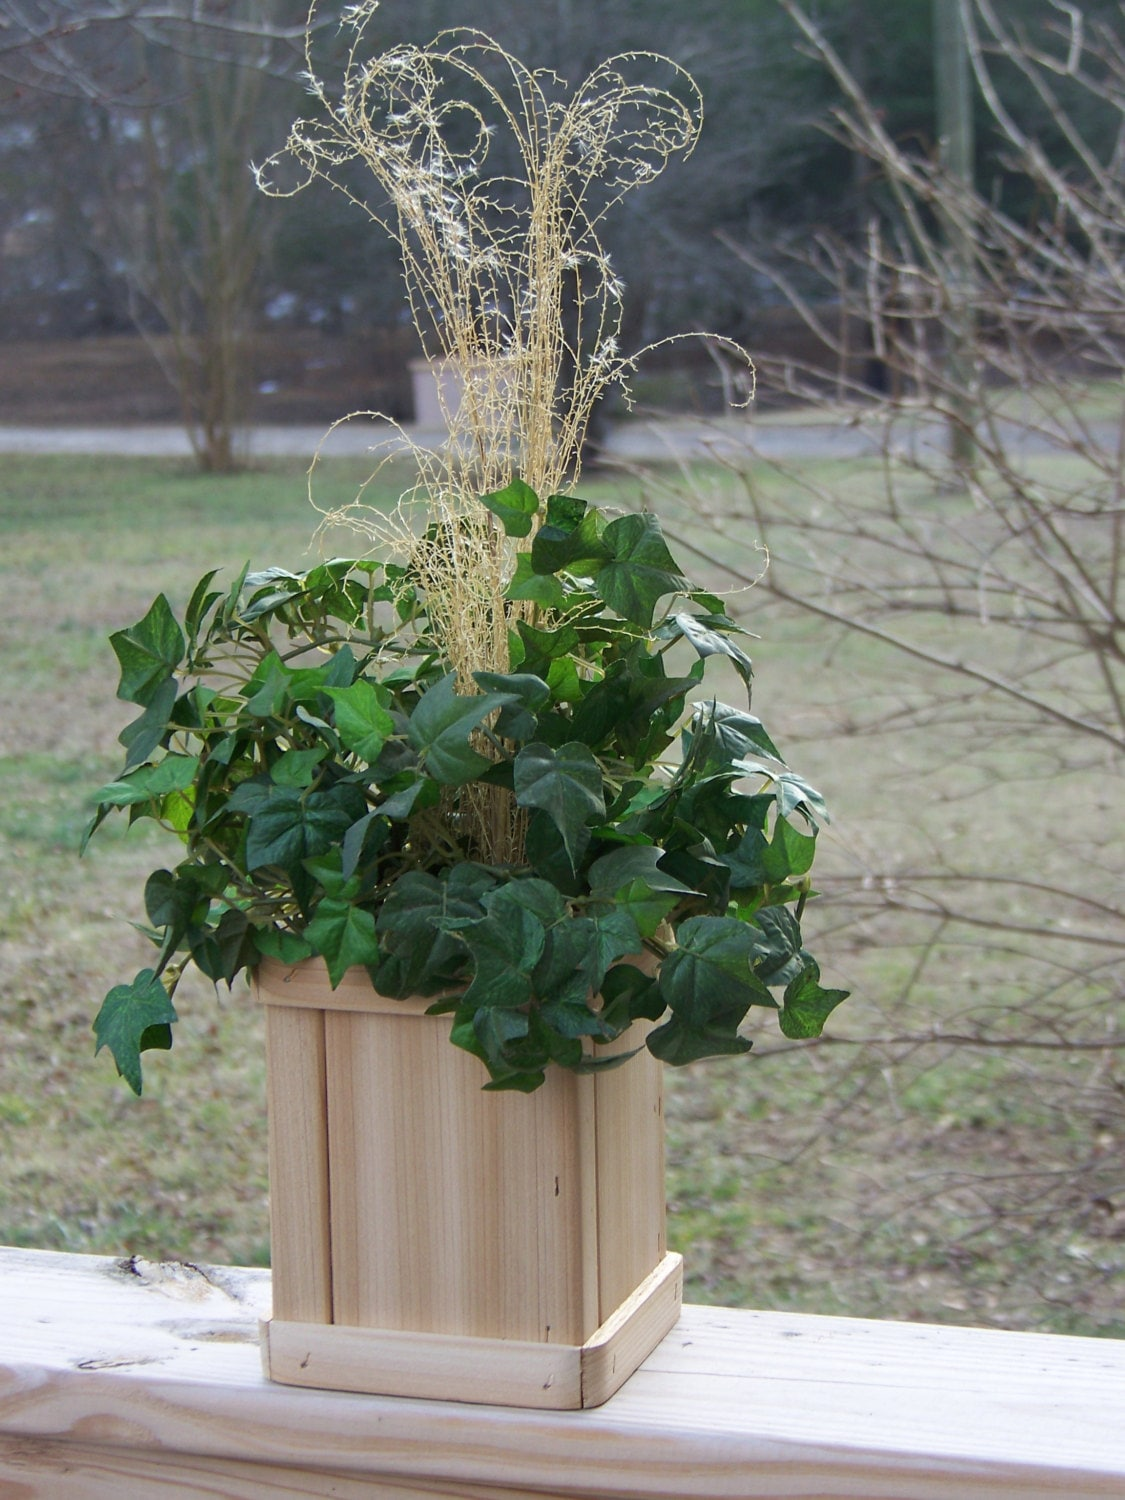 Picture of: Cedar Planter Deck Planter Flower Pot Indoor Outdoor Patio Planter Planter Box Nice Addition To Your Home Or Office Valentine S Day